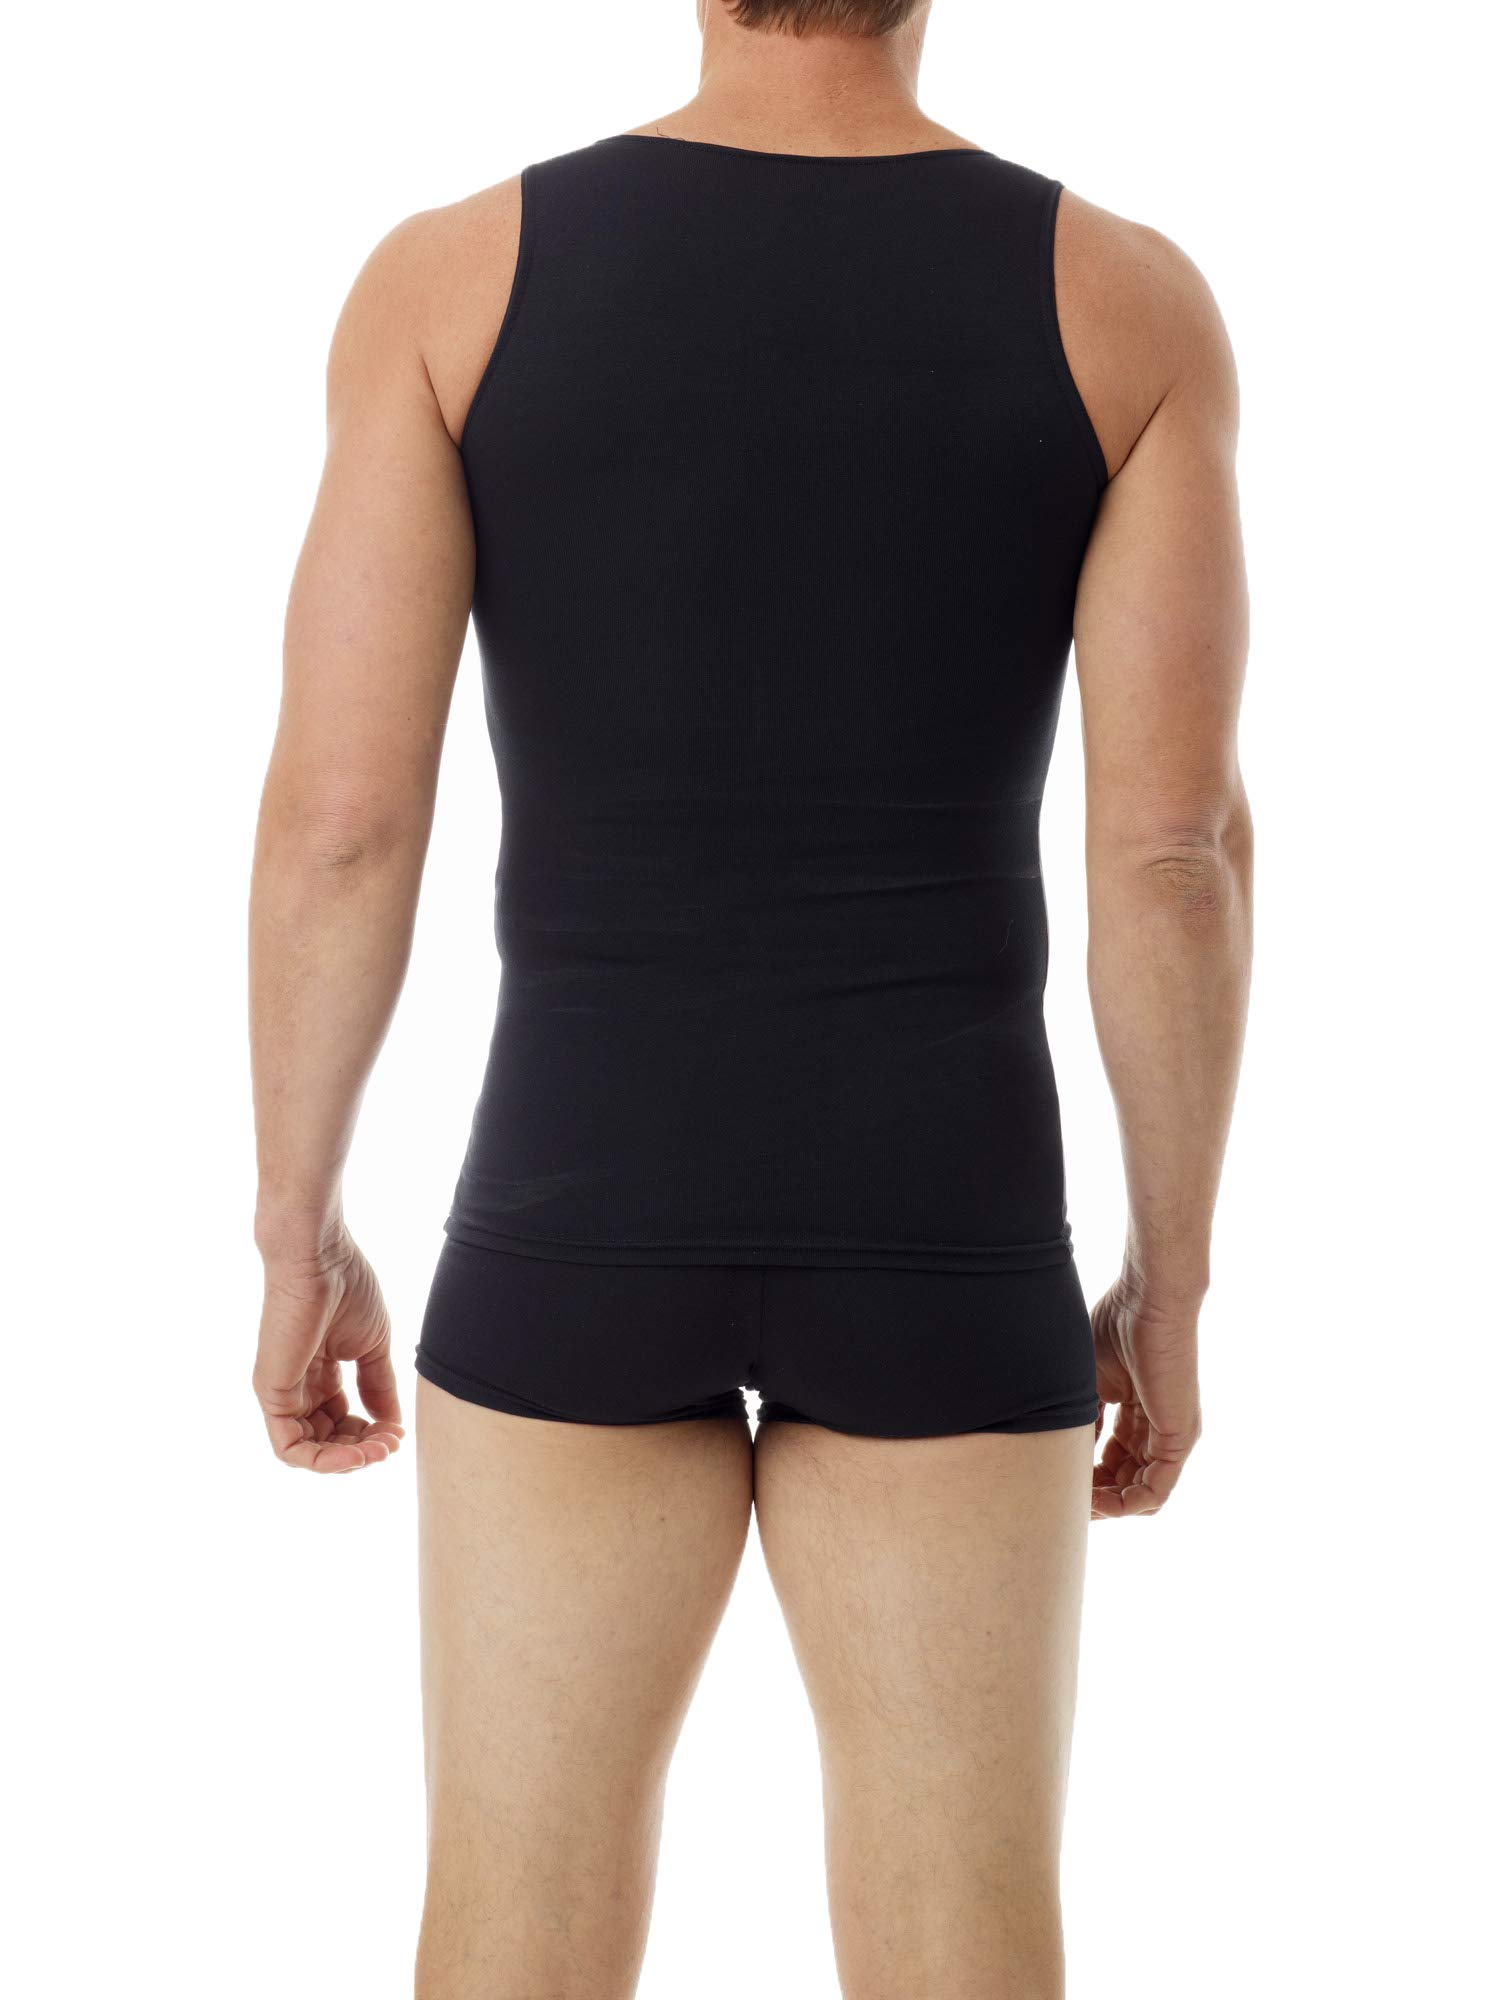 Underworks Mens Cotton Spandex Compression Tank 3-Pack, Small, Black by Underworks (Image #3)